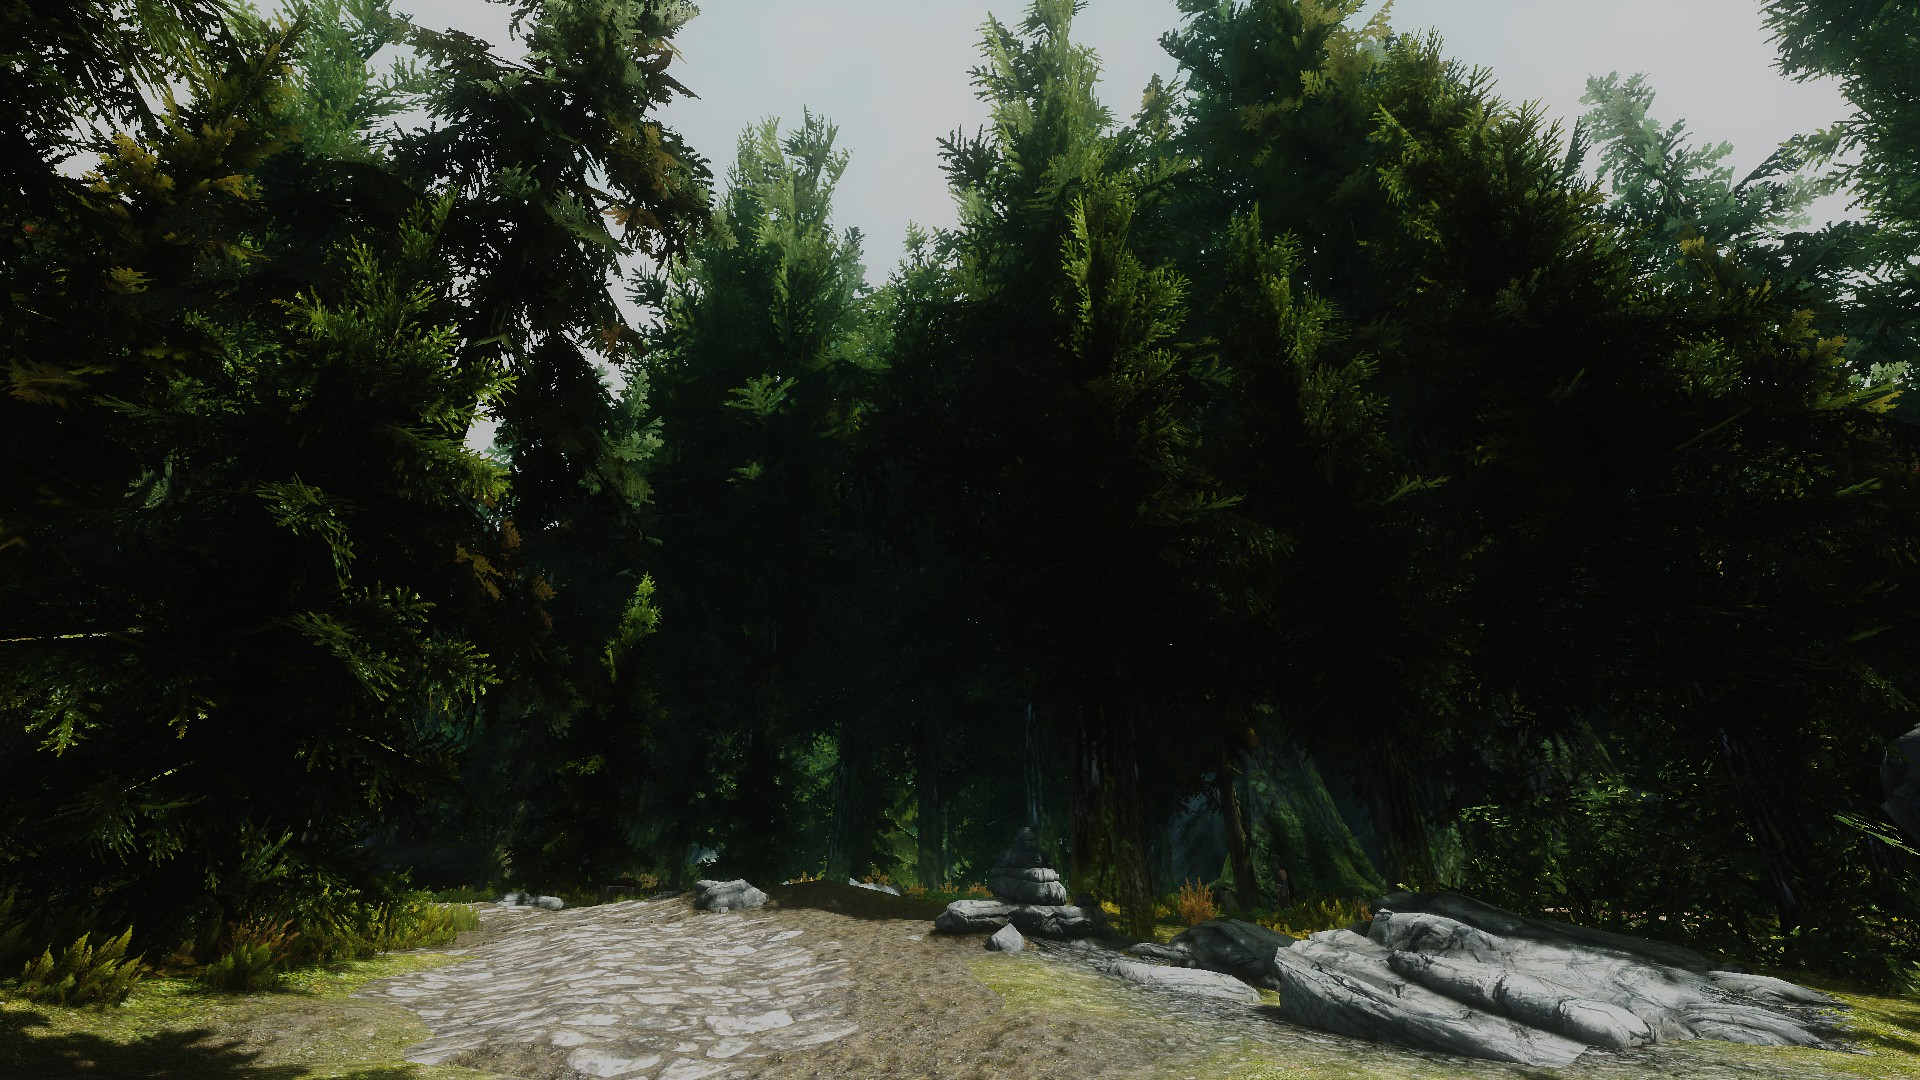 Bigger Trees Mod is Awesome at Skyrim Nexus - mods and community